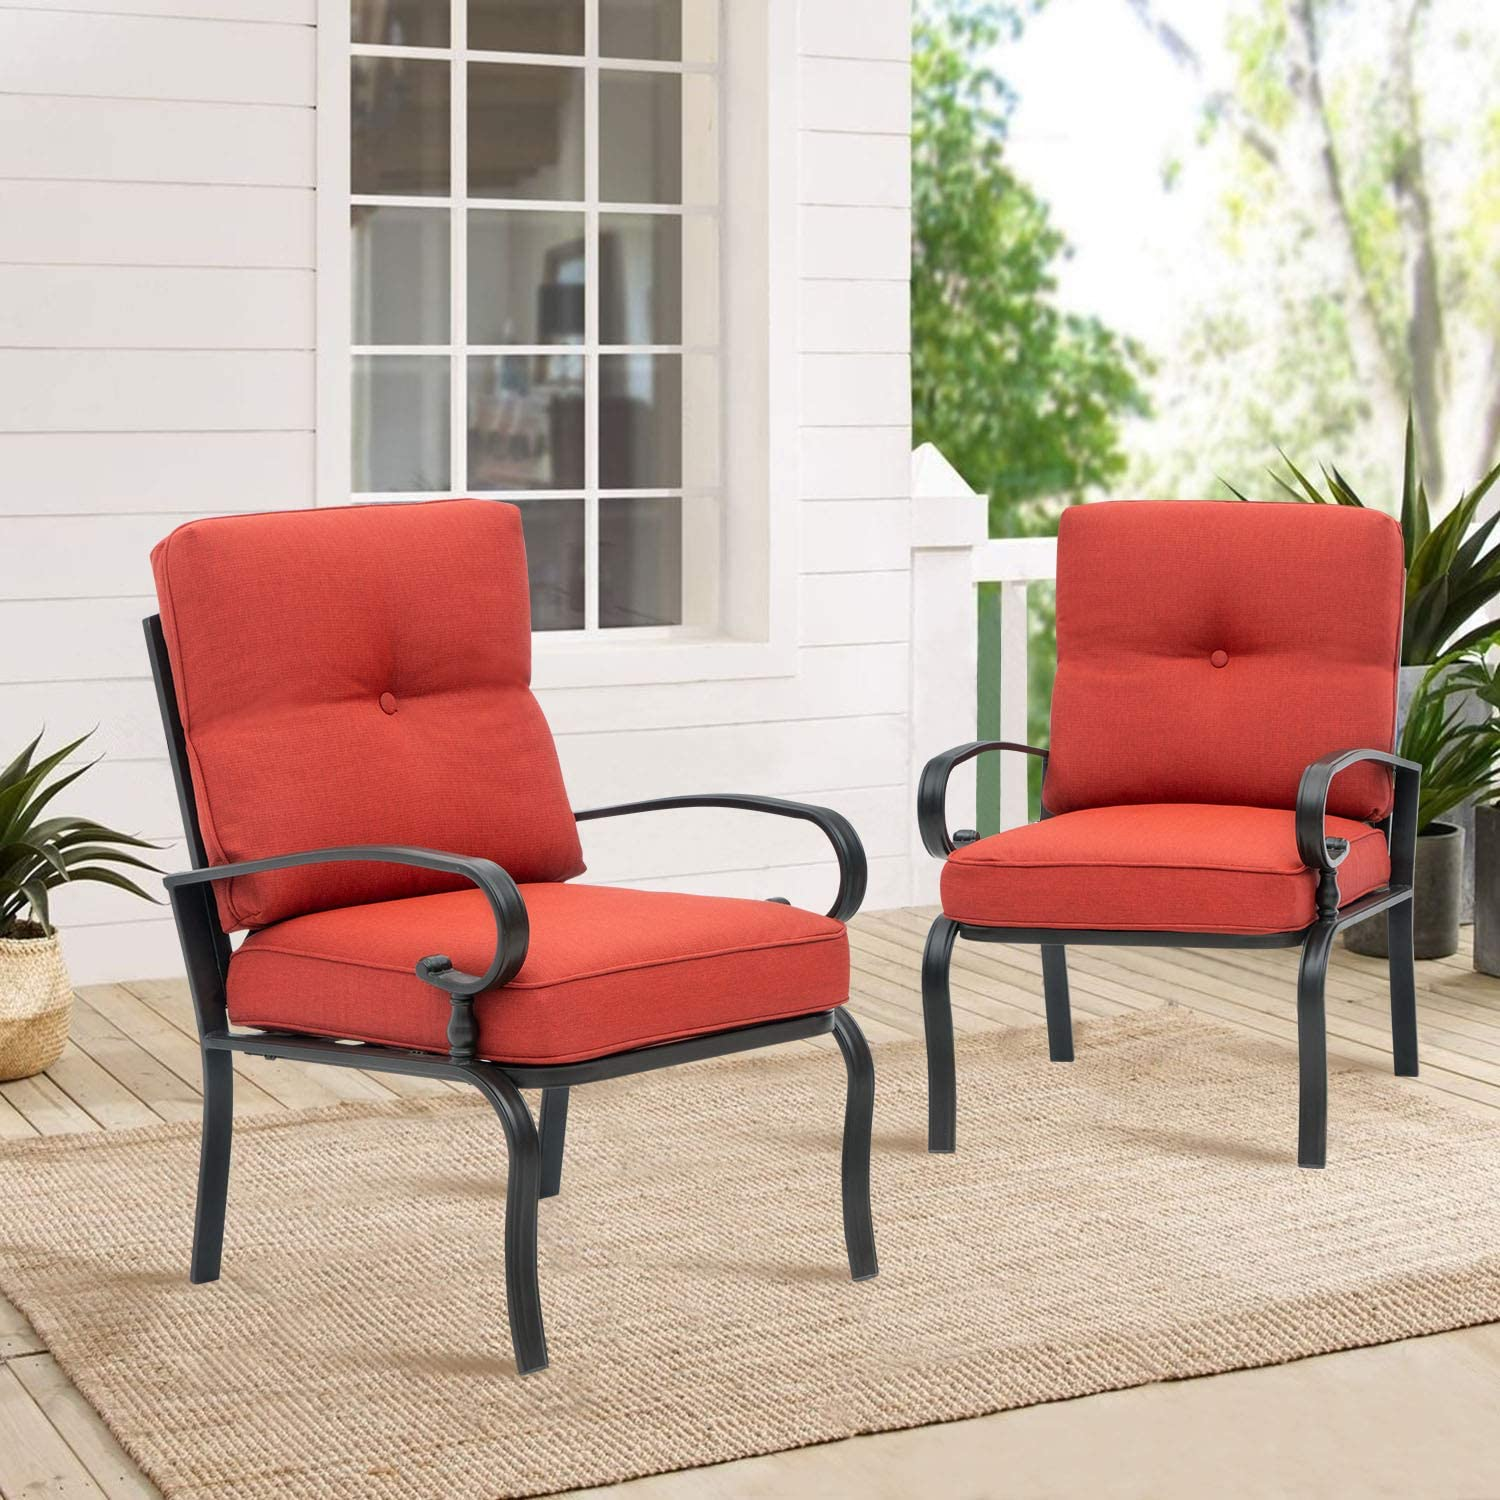 suncrown patio chairs metal dining chair outdoor black wrought iron bistro sets with red patio furniture cushions set of 2 walmart com